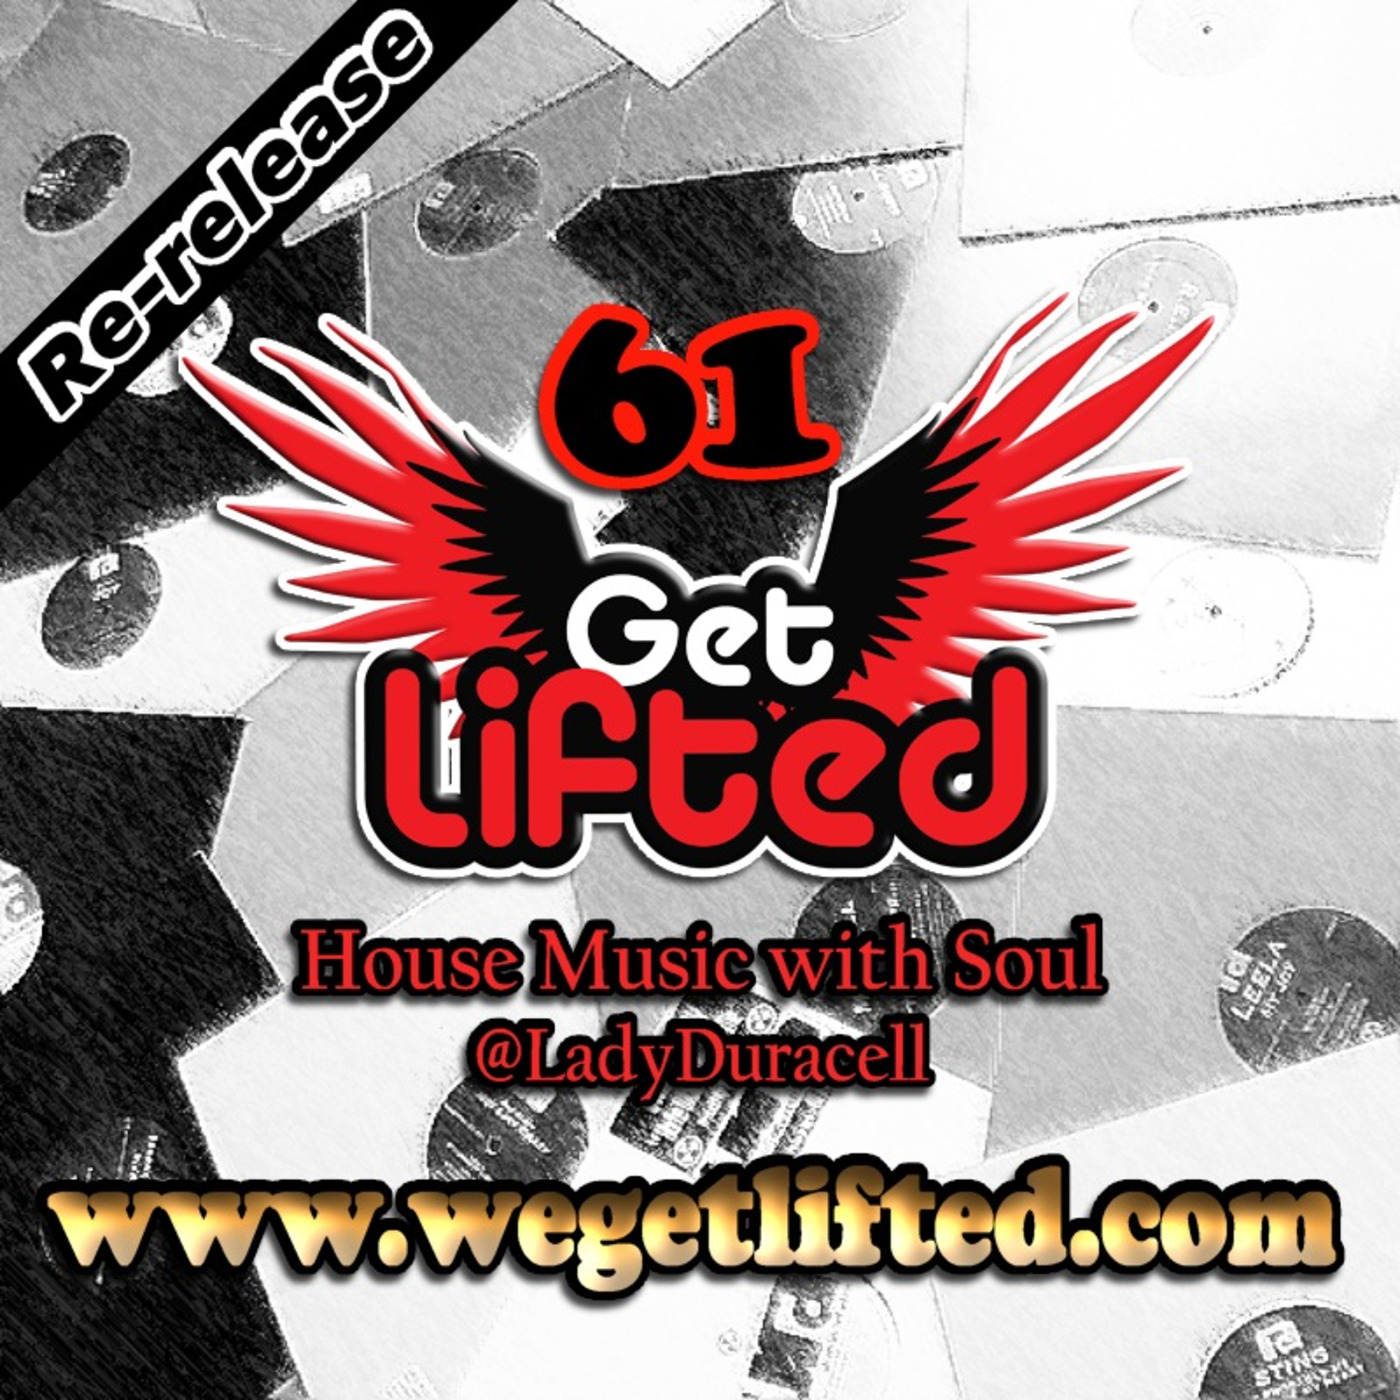 Get Lifted 61 (Re-release) - DJ Lady Duracell Get Lifted